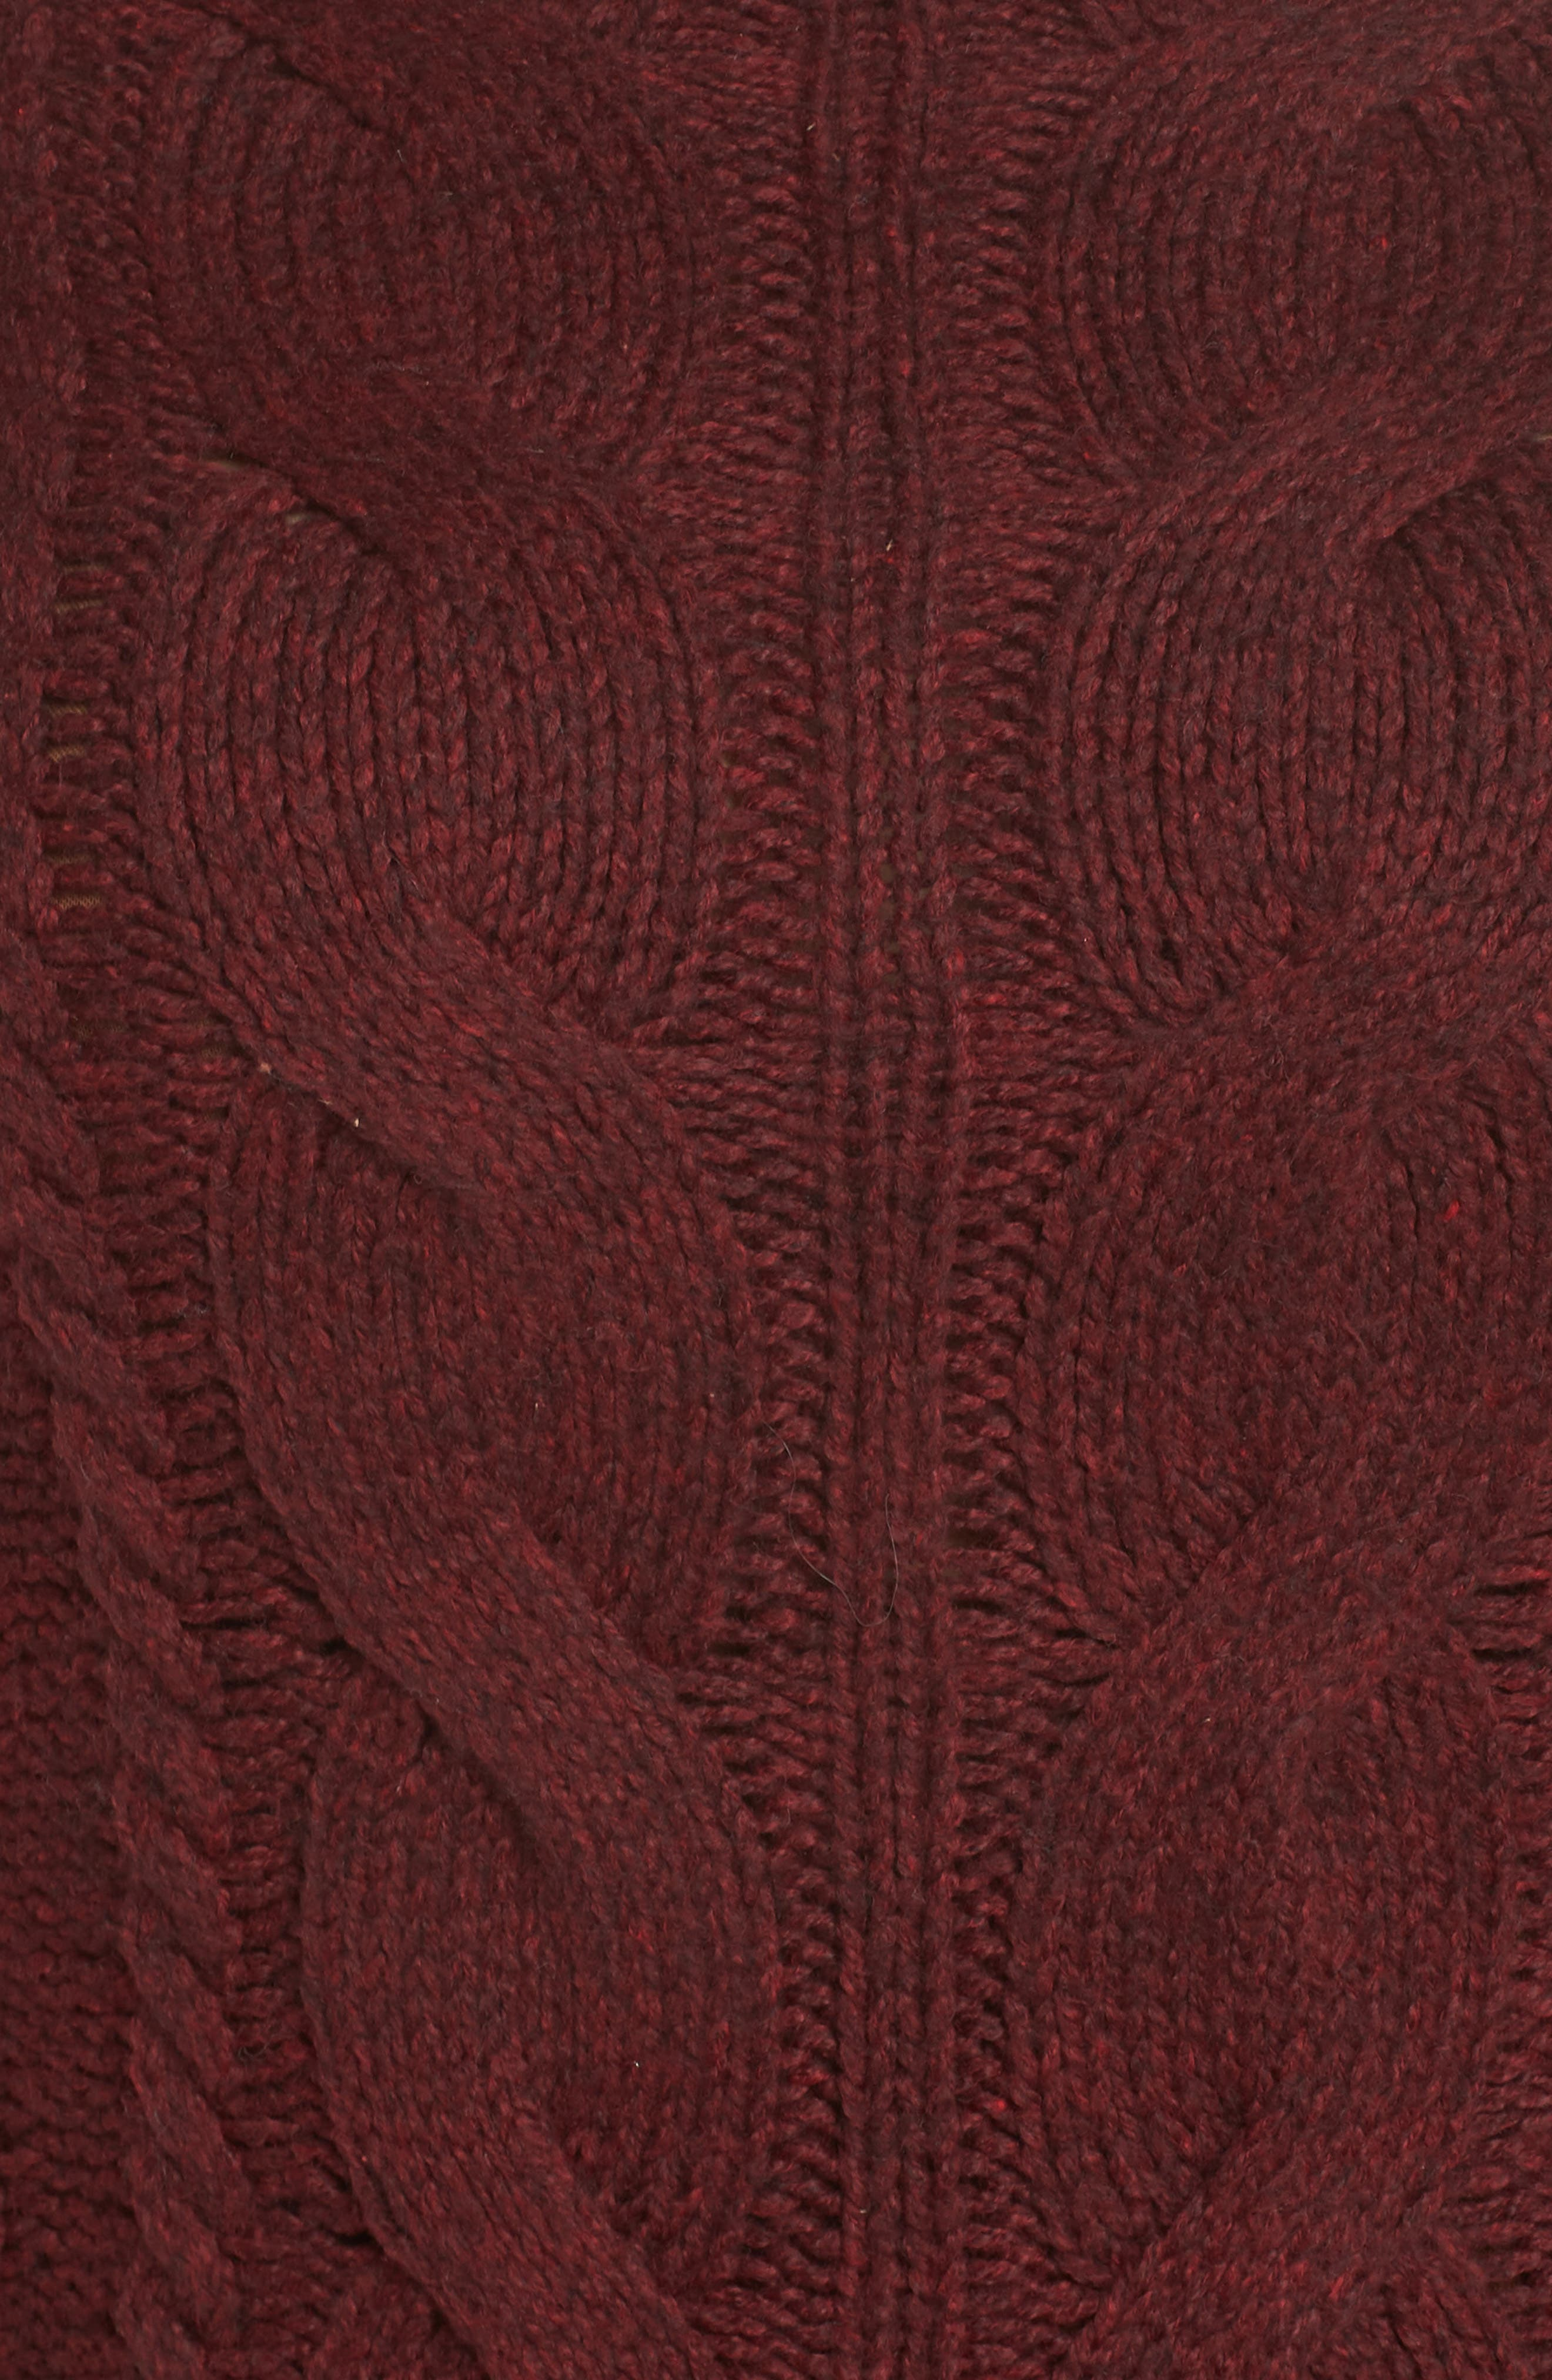 Cotton Blend Cable Knit Sweater,                             Alternate thumbnail 7, color,                             MANOR RED